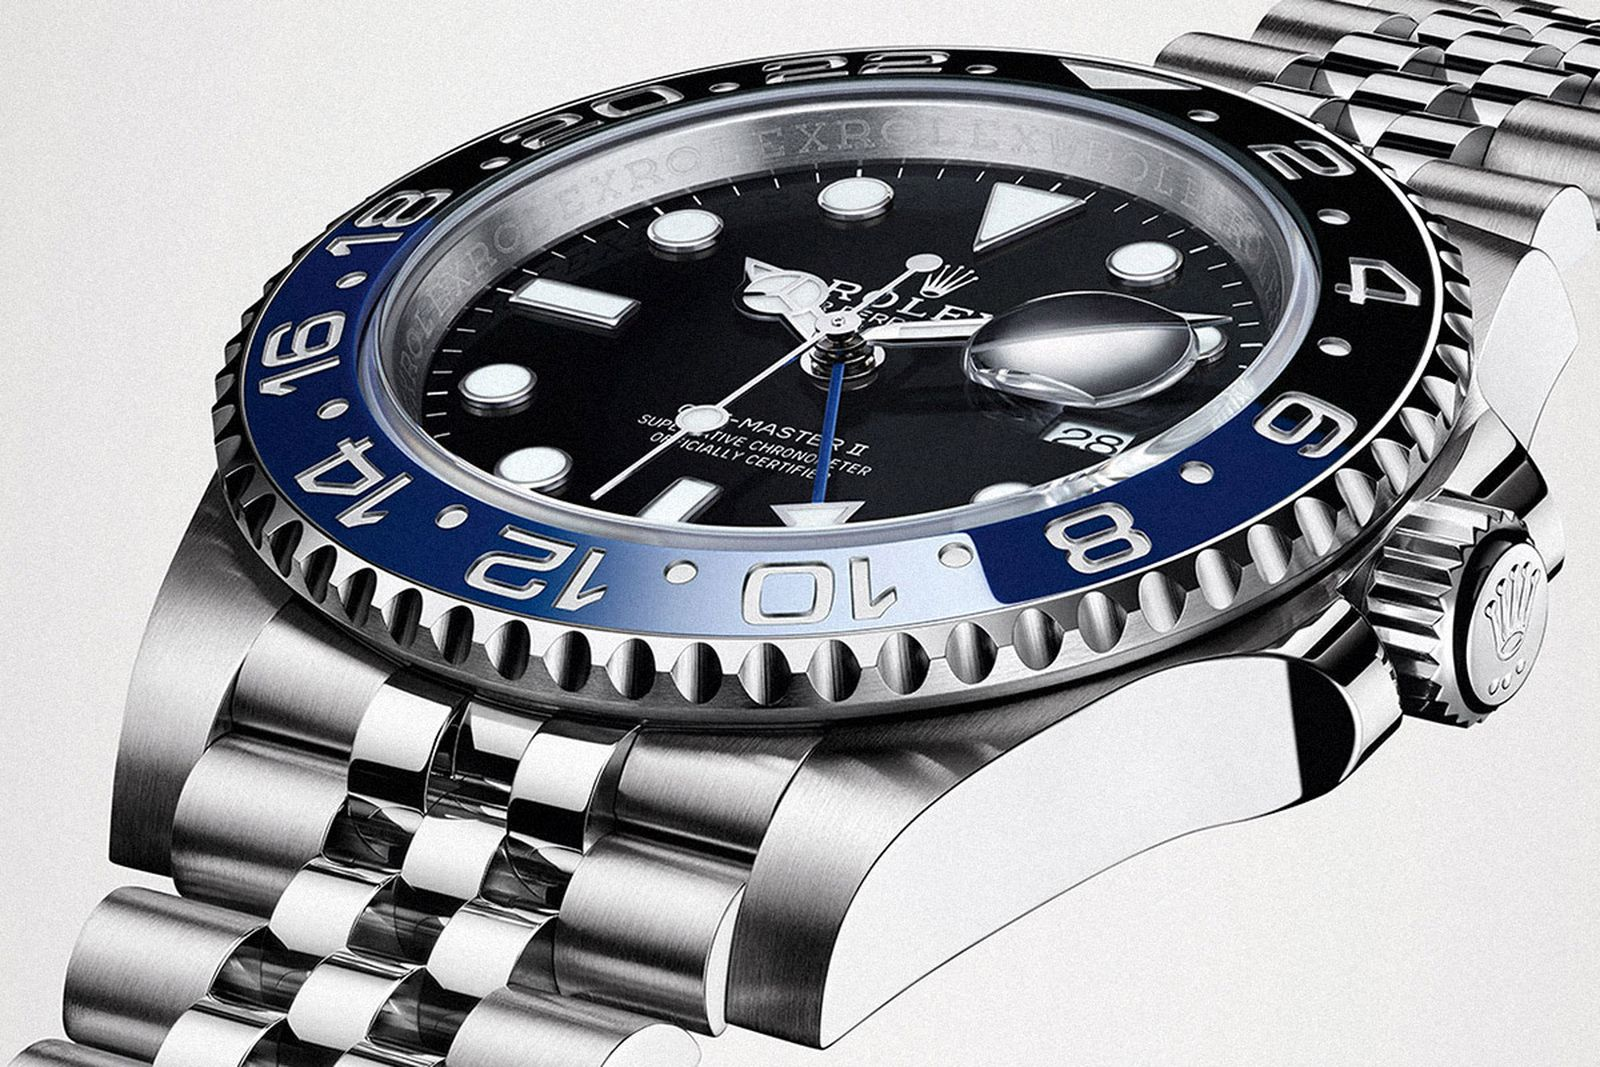 rolex-watches-guide-main